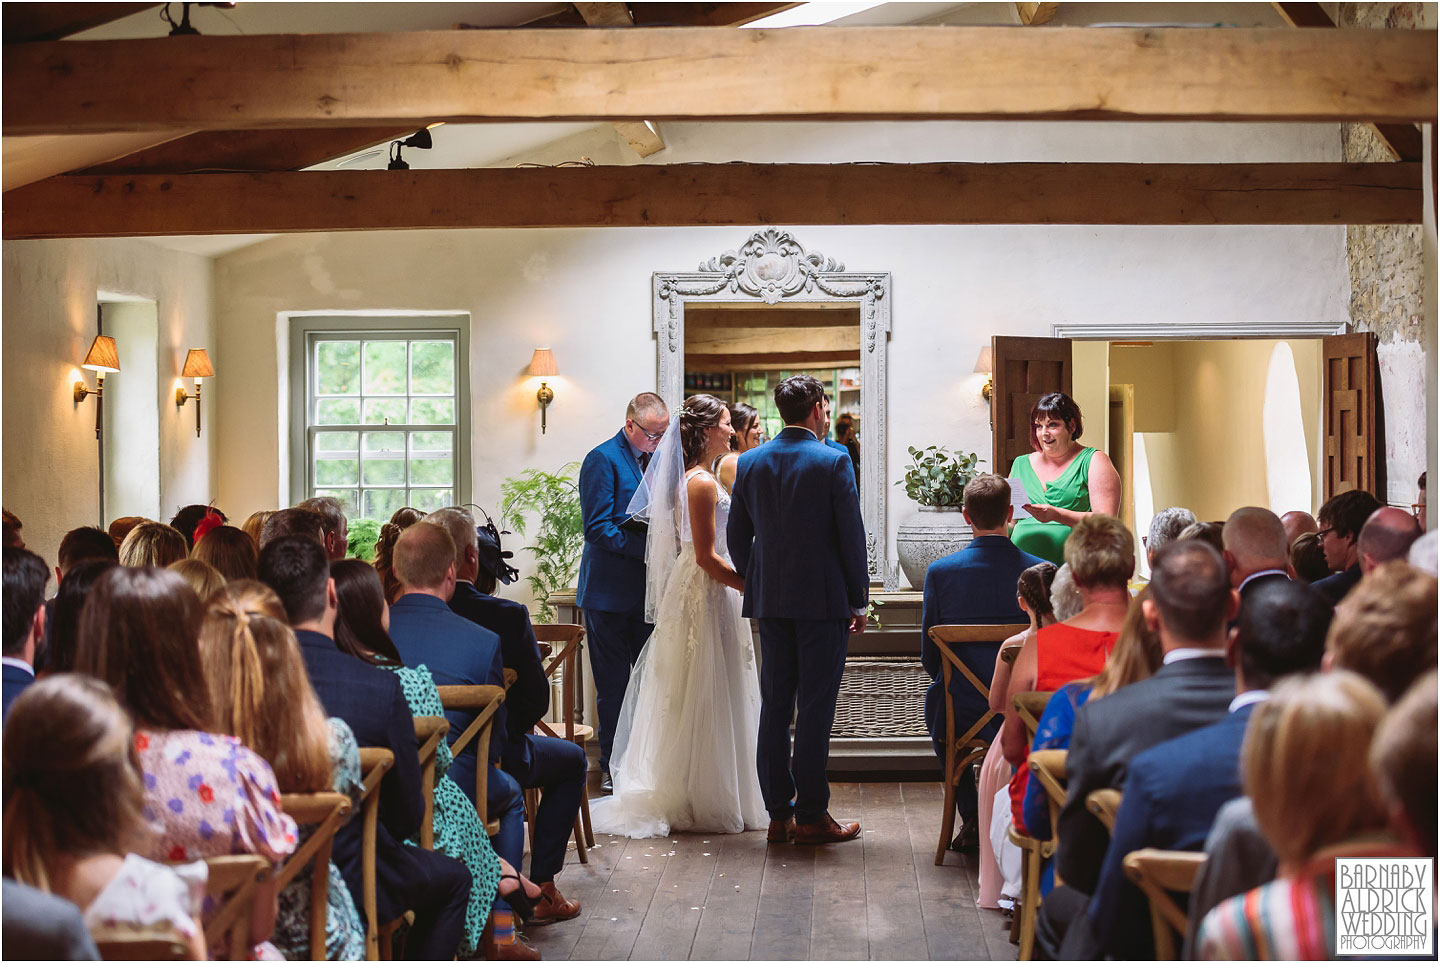 Wedding ceremony at the Fig House Walled Garden at Middleton Lodge, Fig House Walled Garden Middleton Lodge Wedding Photos, Fig House Middleton Lodge Richmond, Middleton Lodge wedding photographer, Middleton Lodge Wedding Photography, Yorkshire Wedding Photographer Barnaby Aldrick